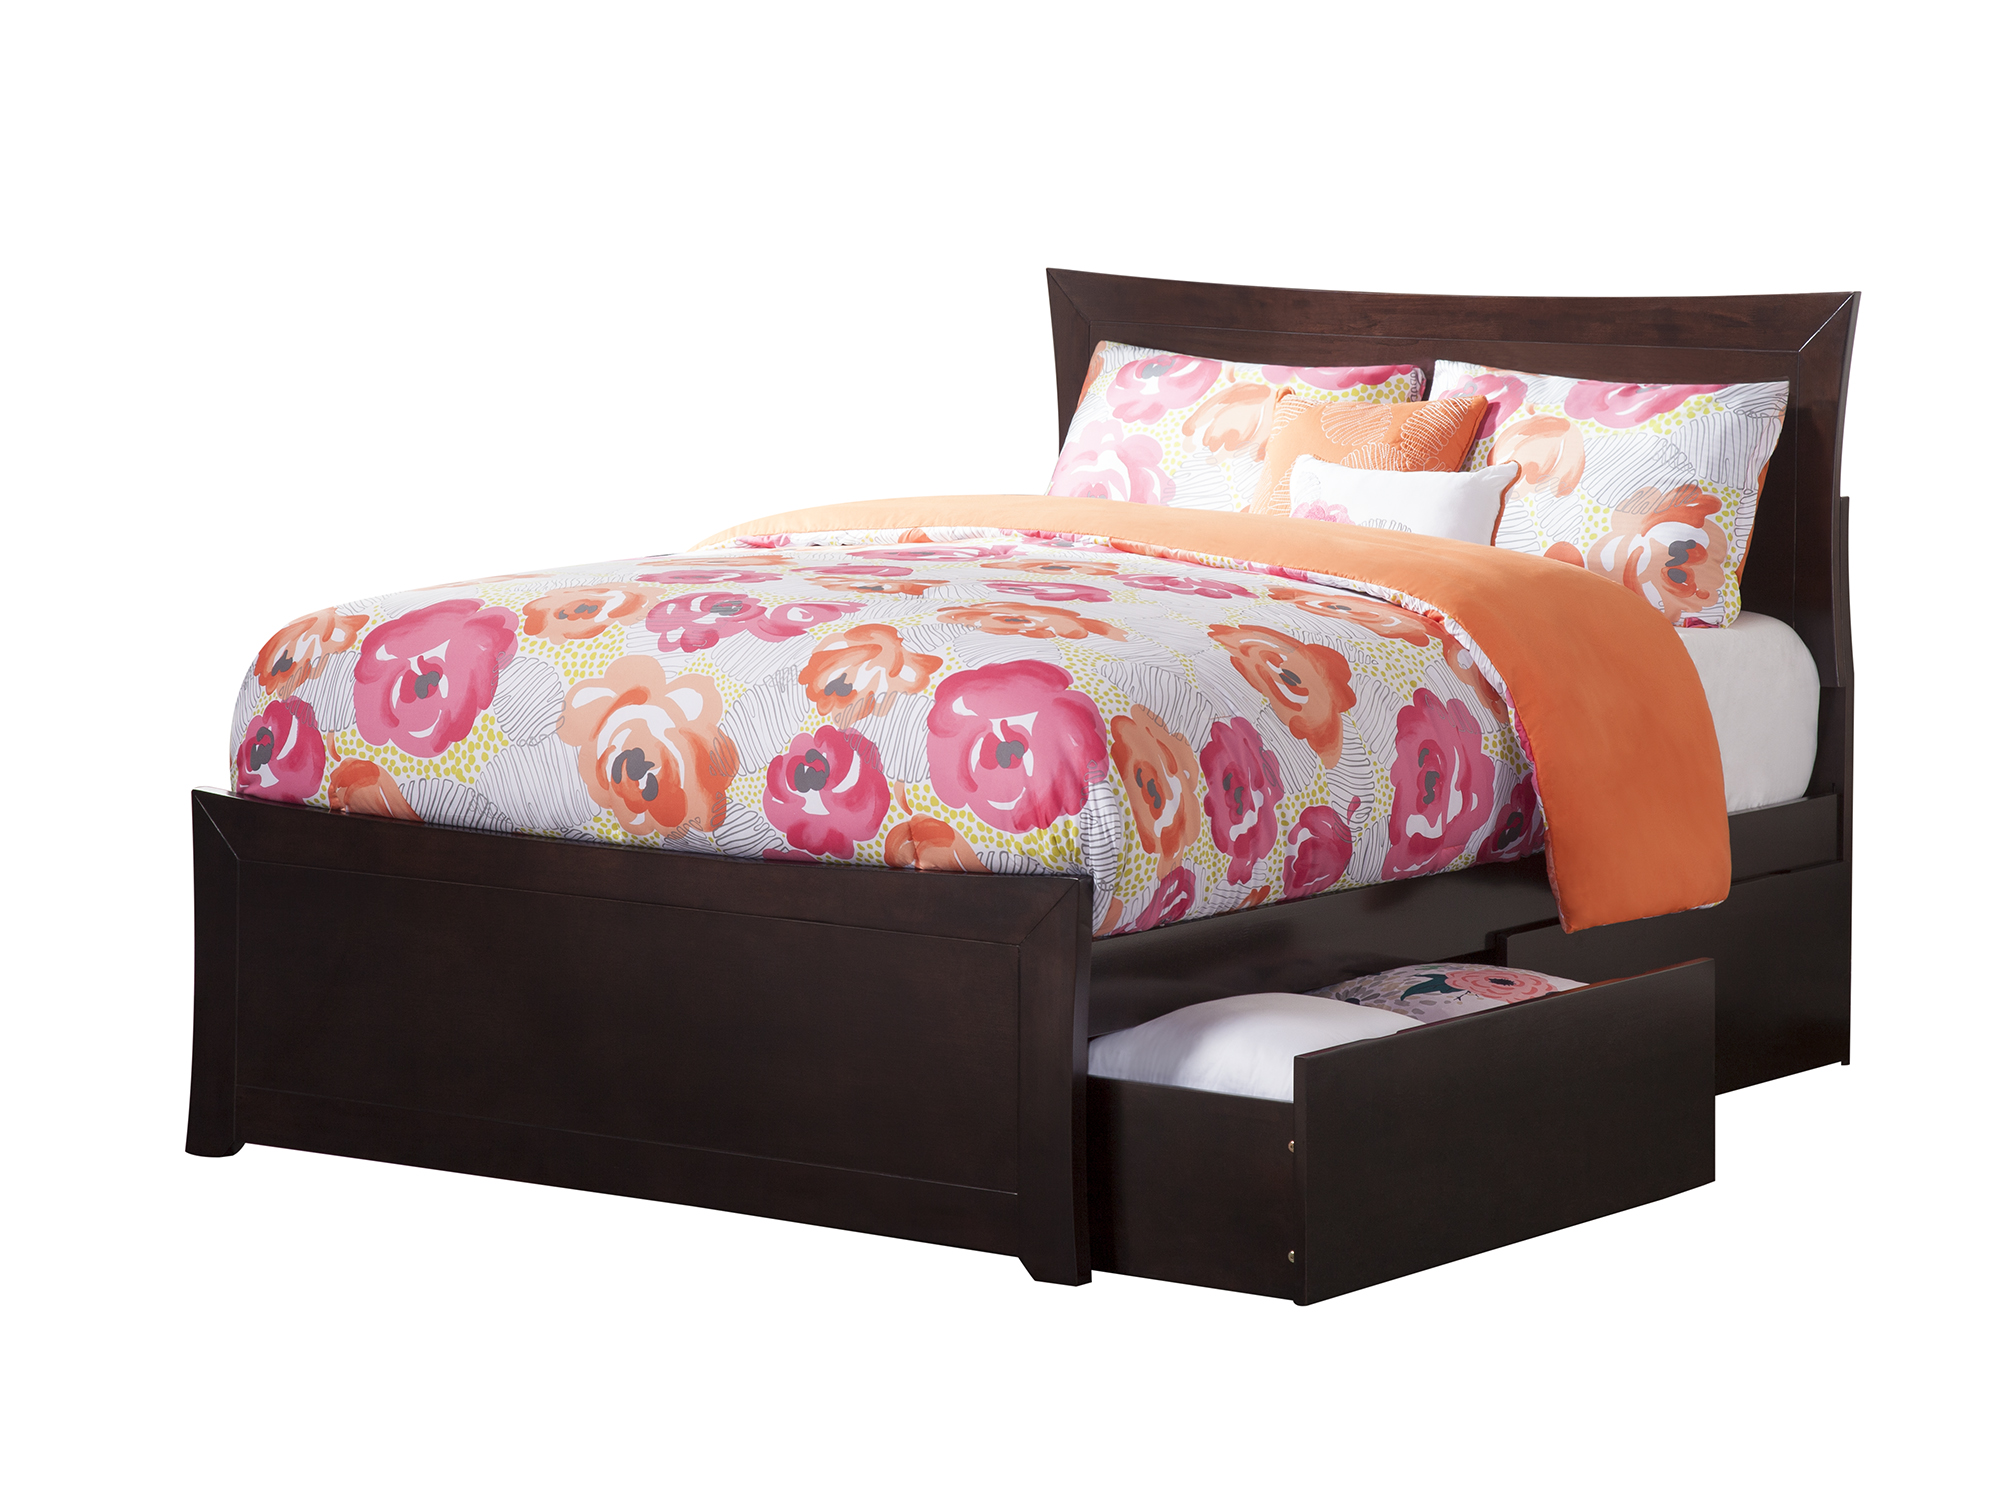 Metro Full Platform Bed With Matching Foot Board With 2 Urban Bed Drawers,  Multiple Colors   Walmart.com